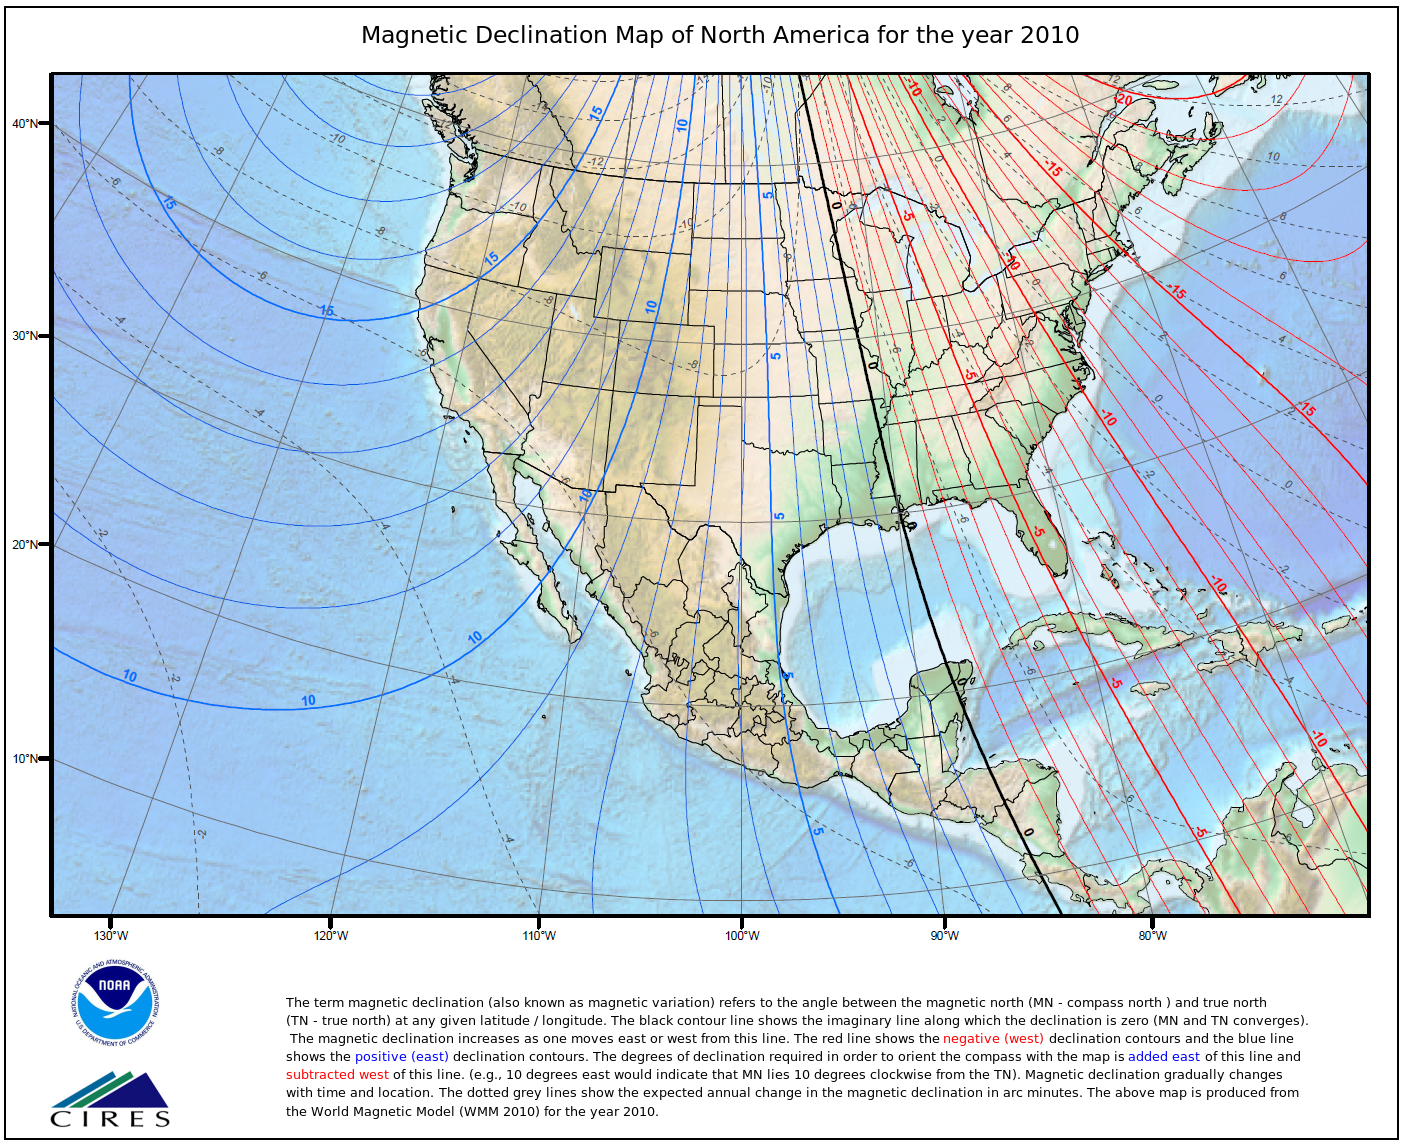 magnetic declination variation map for north america from 2010 by noaa click to enlarge